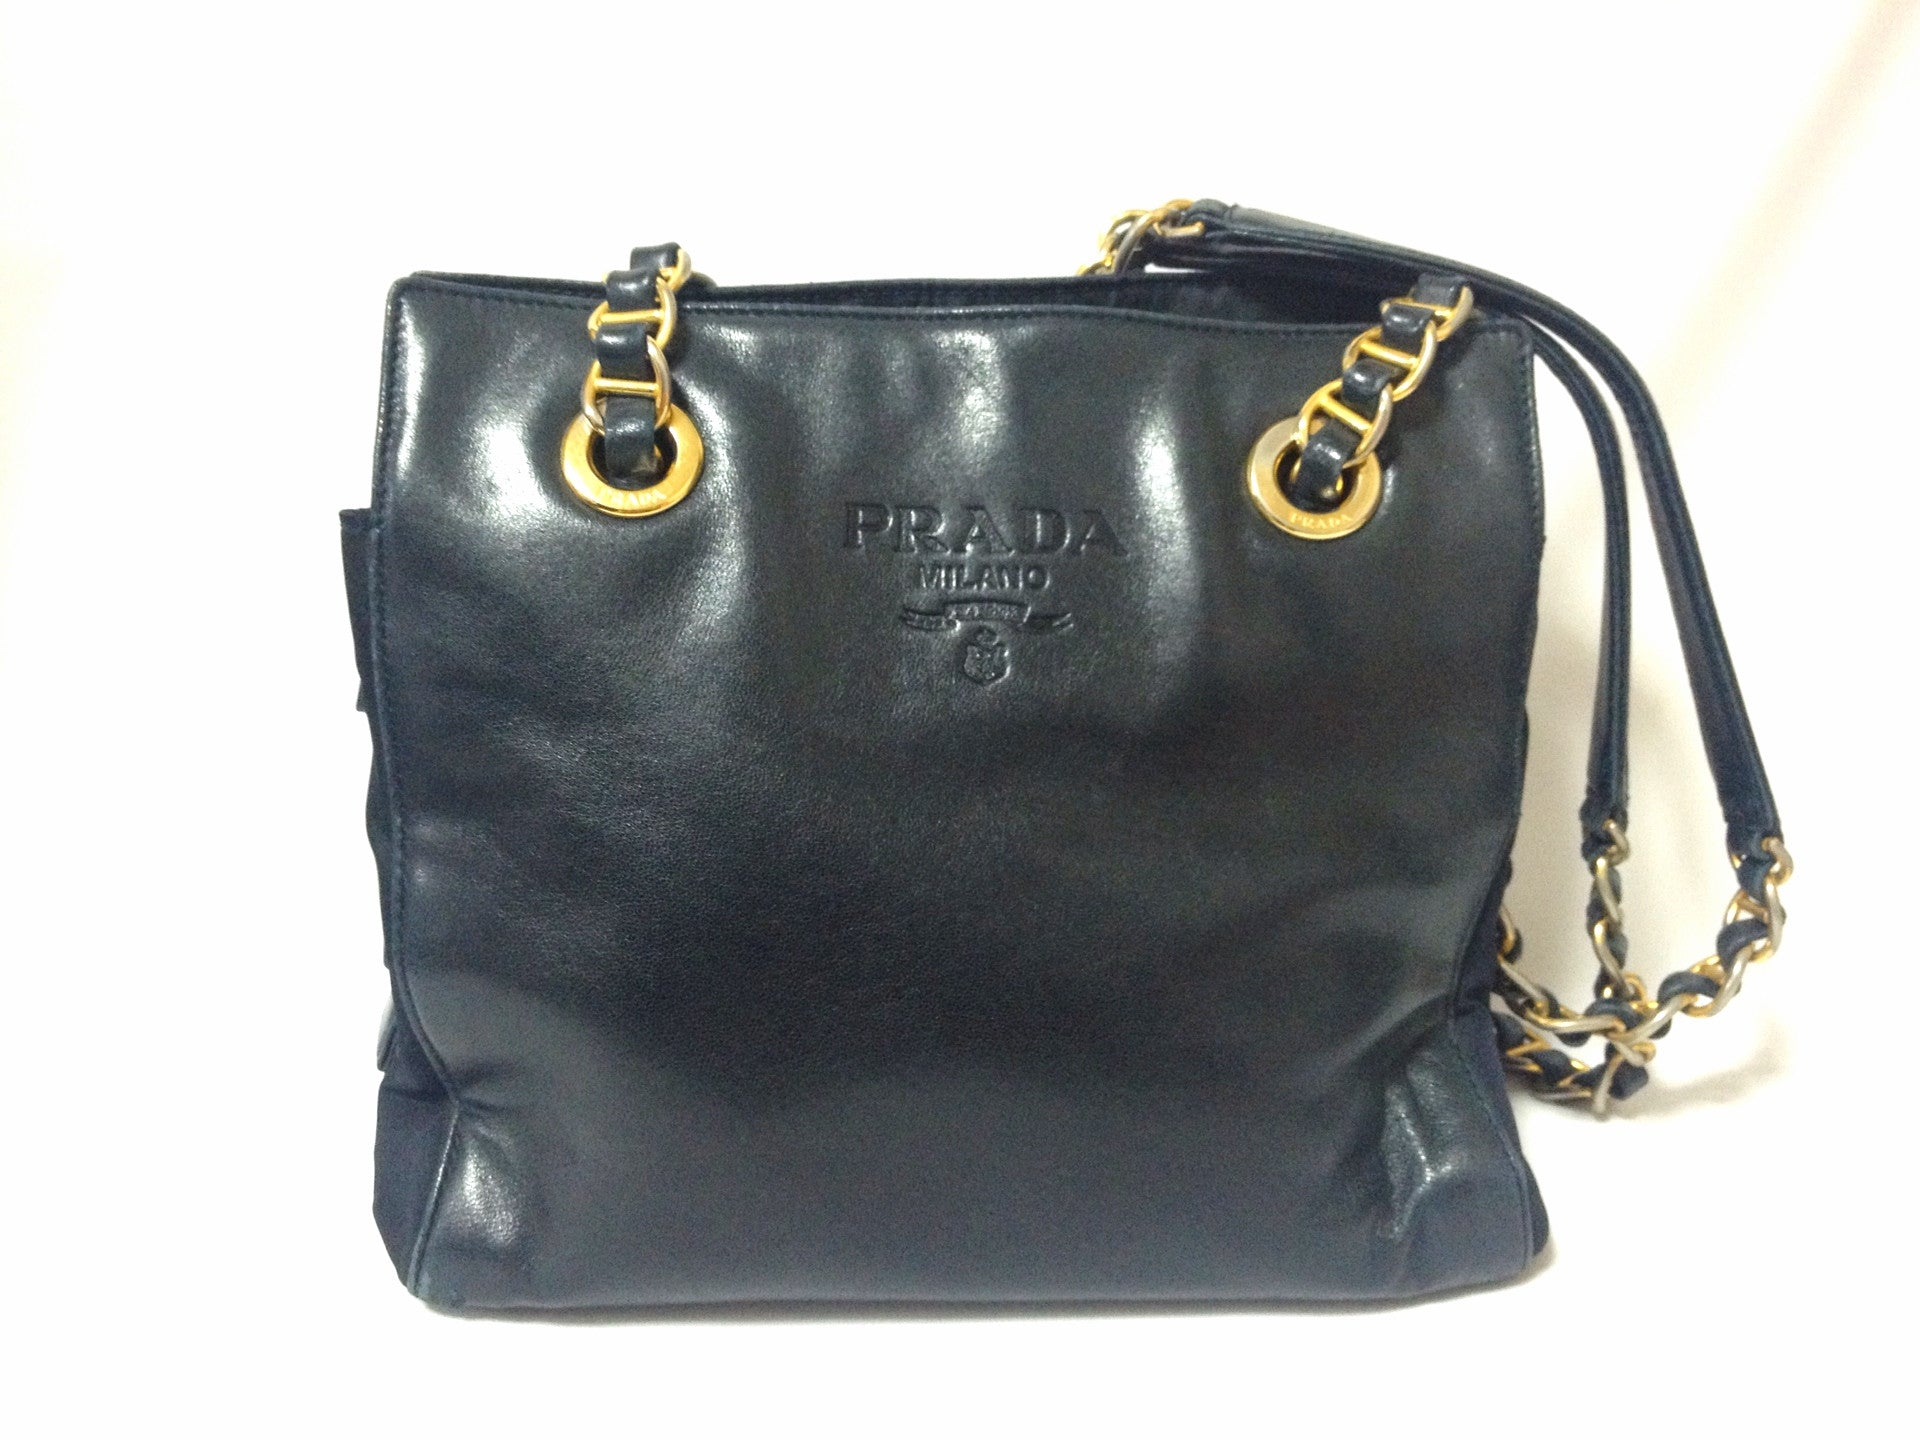 fdaad69cf31 ... wholesale vintage prada genuine dark navy nappa leather chain shoulder  tote bag with double chain straps